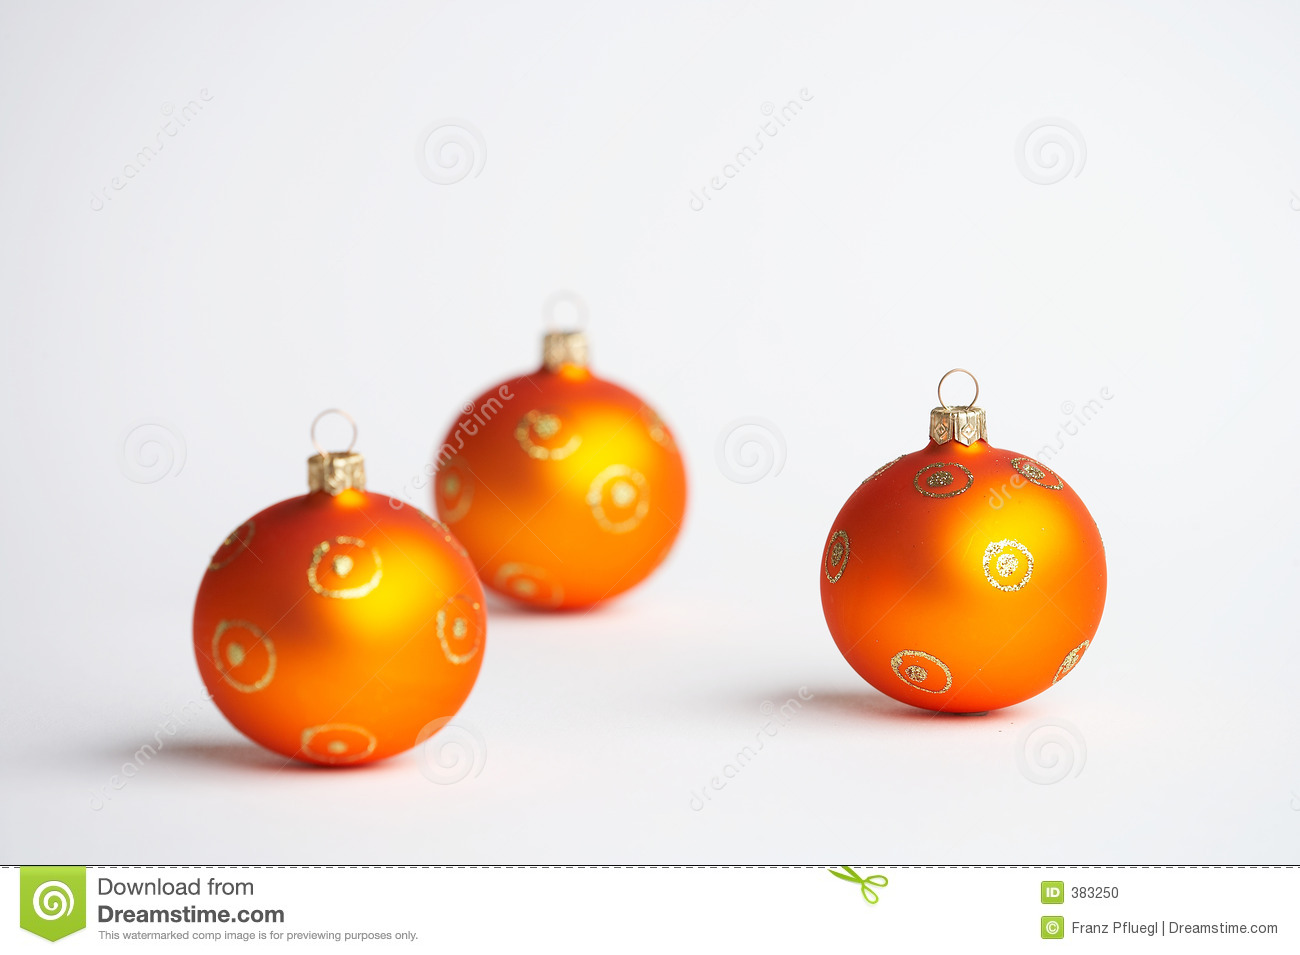 De oranje ballen van de Kerstboom - oranje Weihnachtskugeln